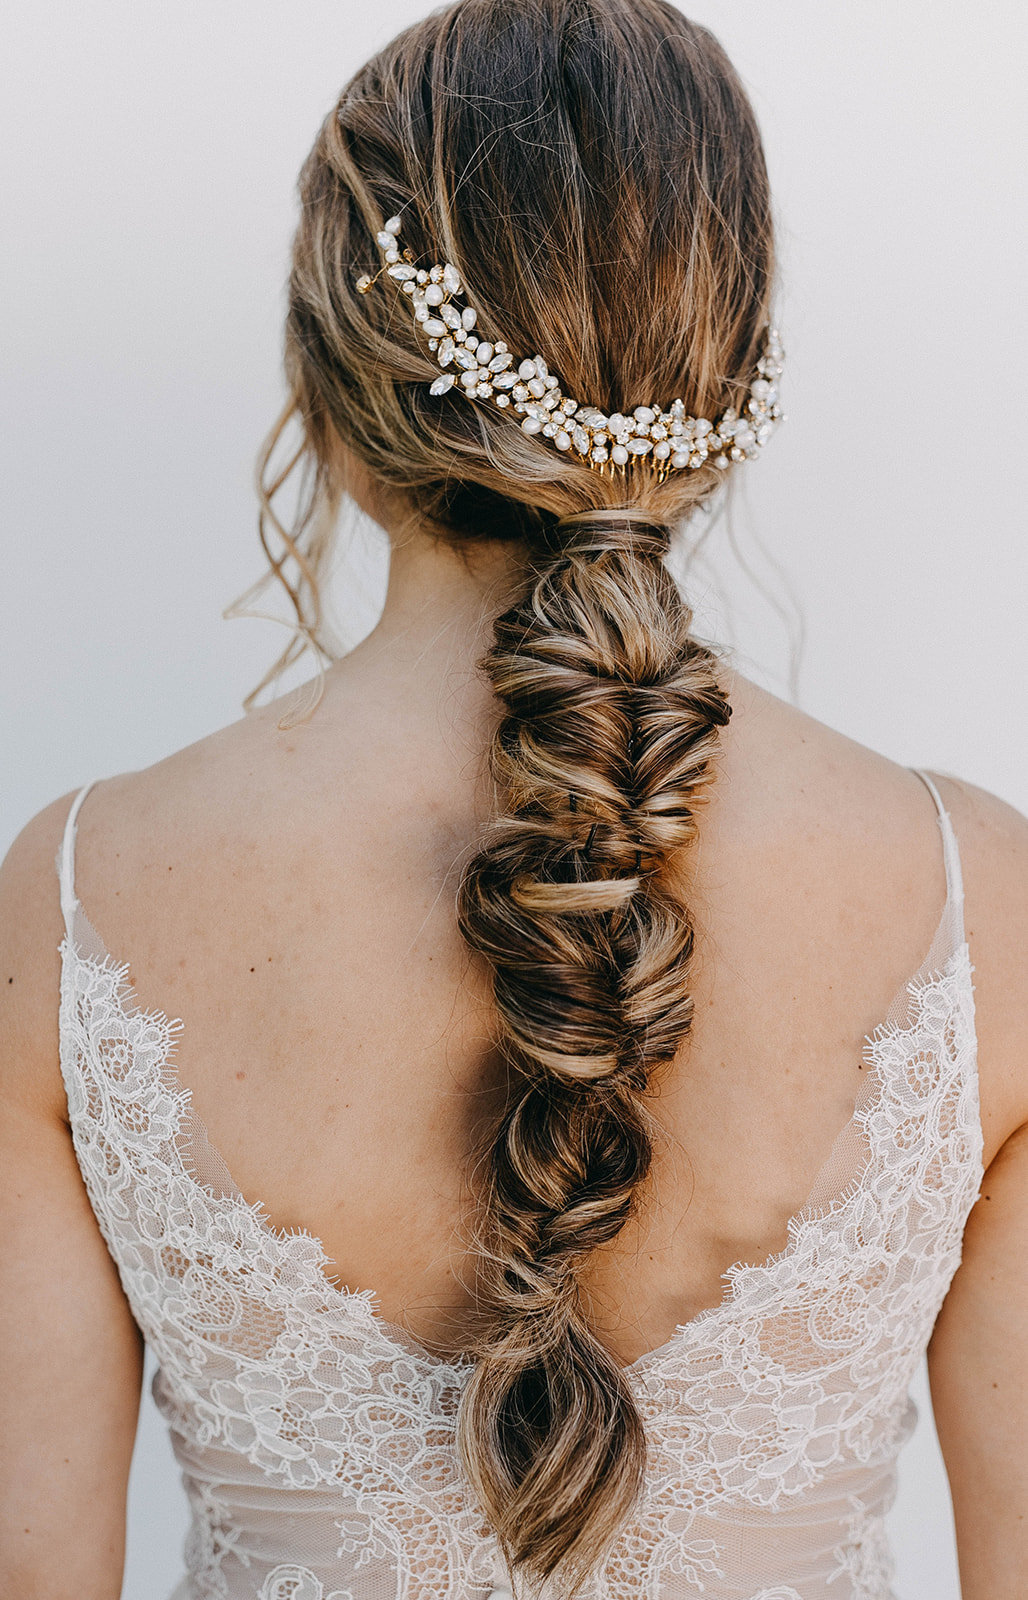 Lady Luxe Beauty Boston Massachusetts Onsite Hair Makeup Bridal Bride Hairstylist Artist23